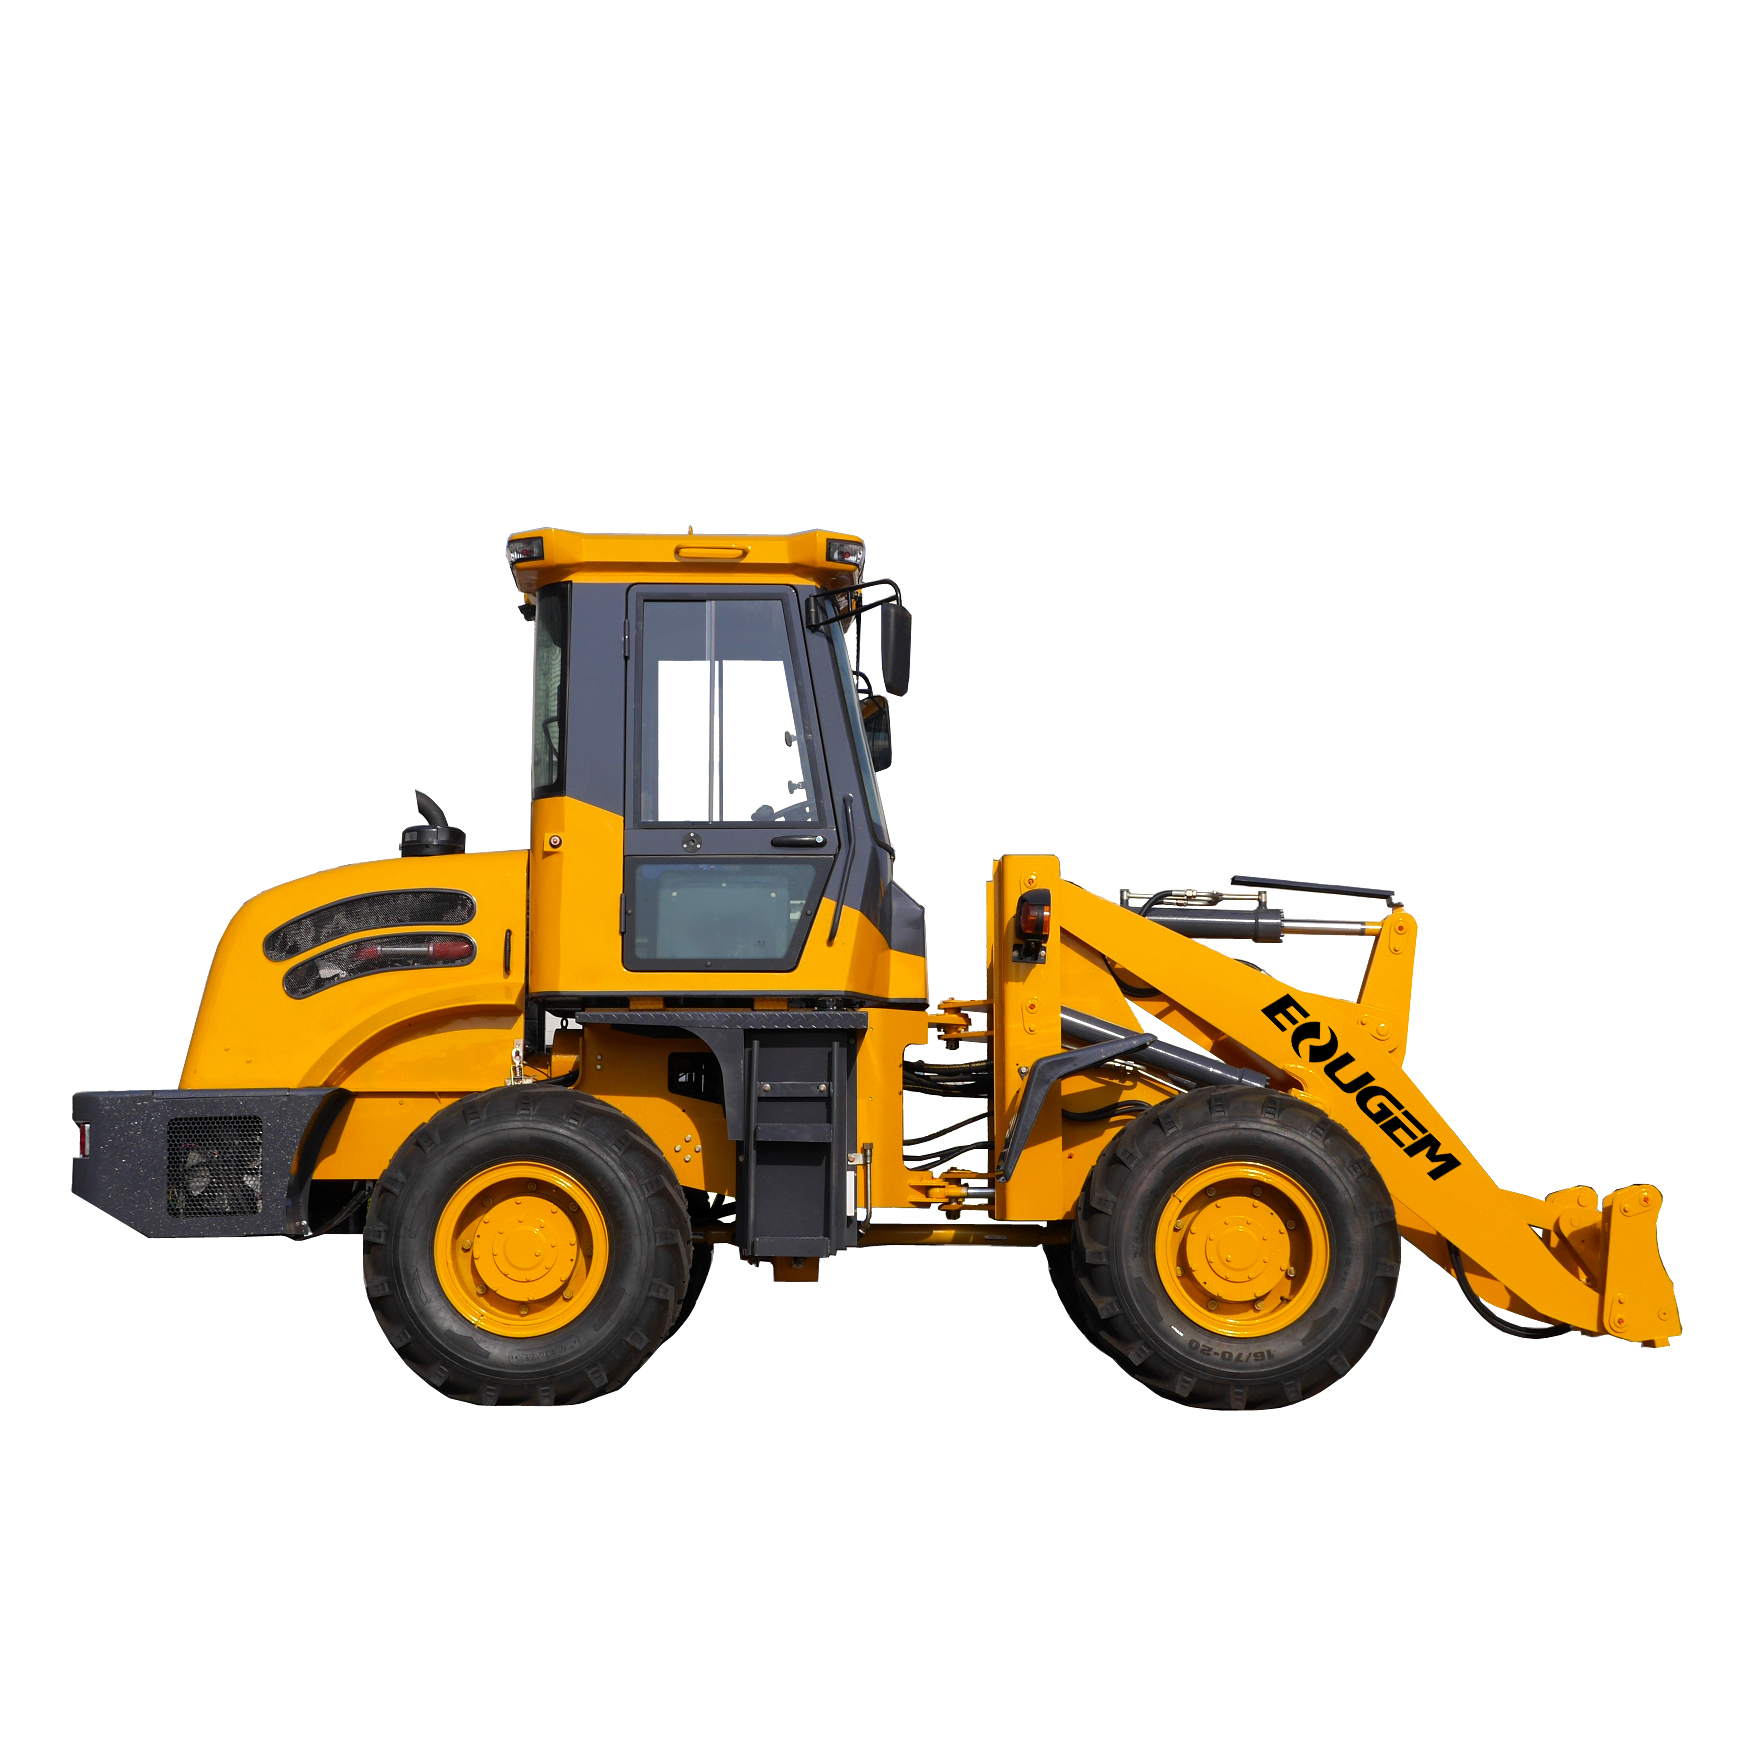 Eougem CE Certificated ZL20 Wheel Loader With Multiple Attachment China Manufacturer Payloader